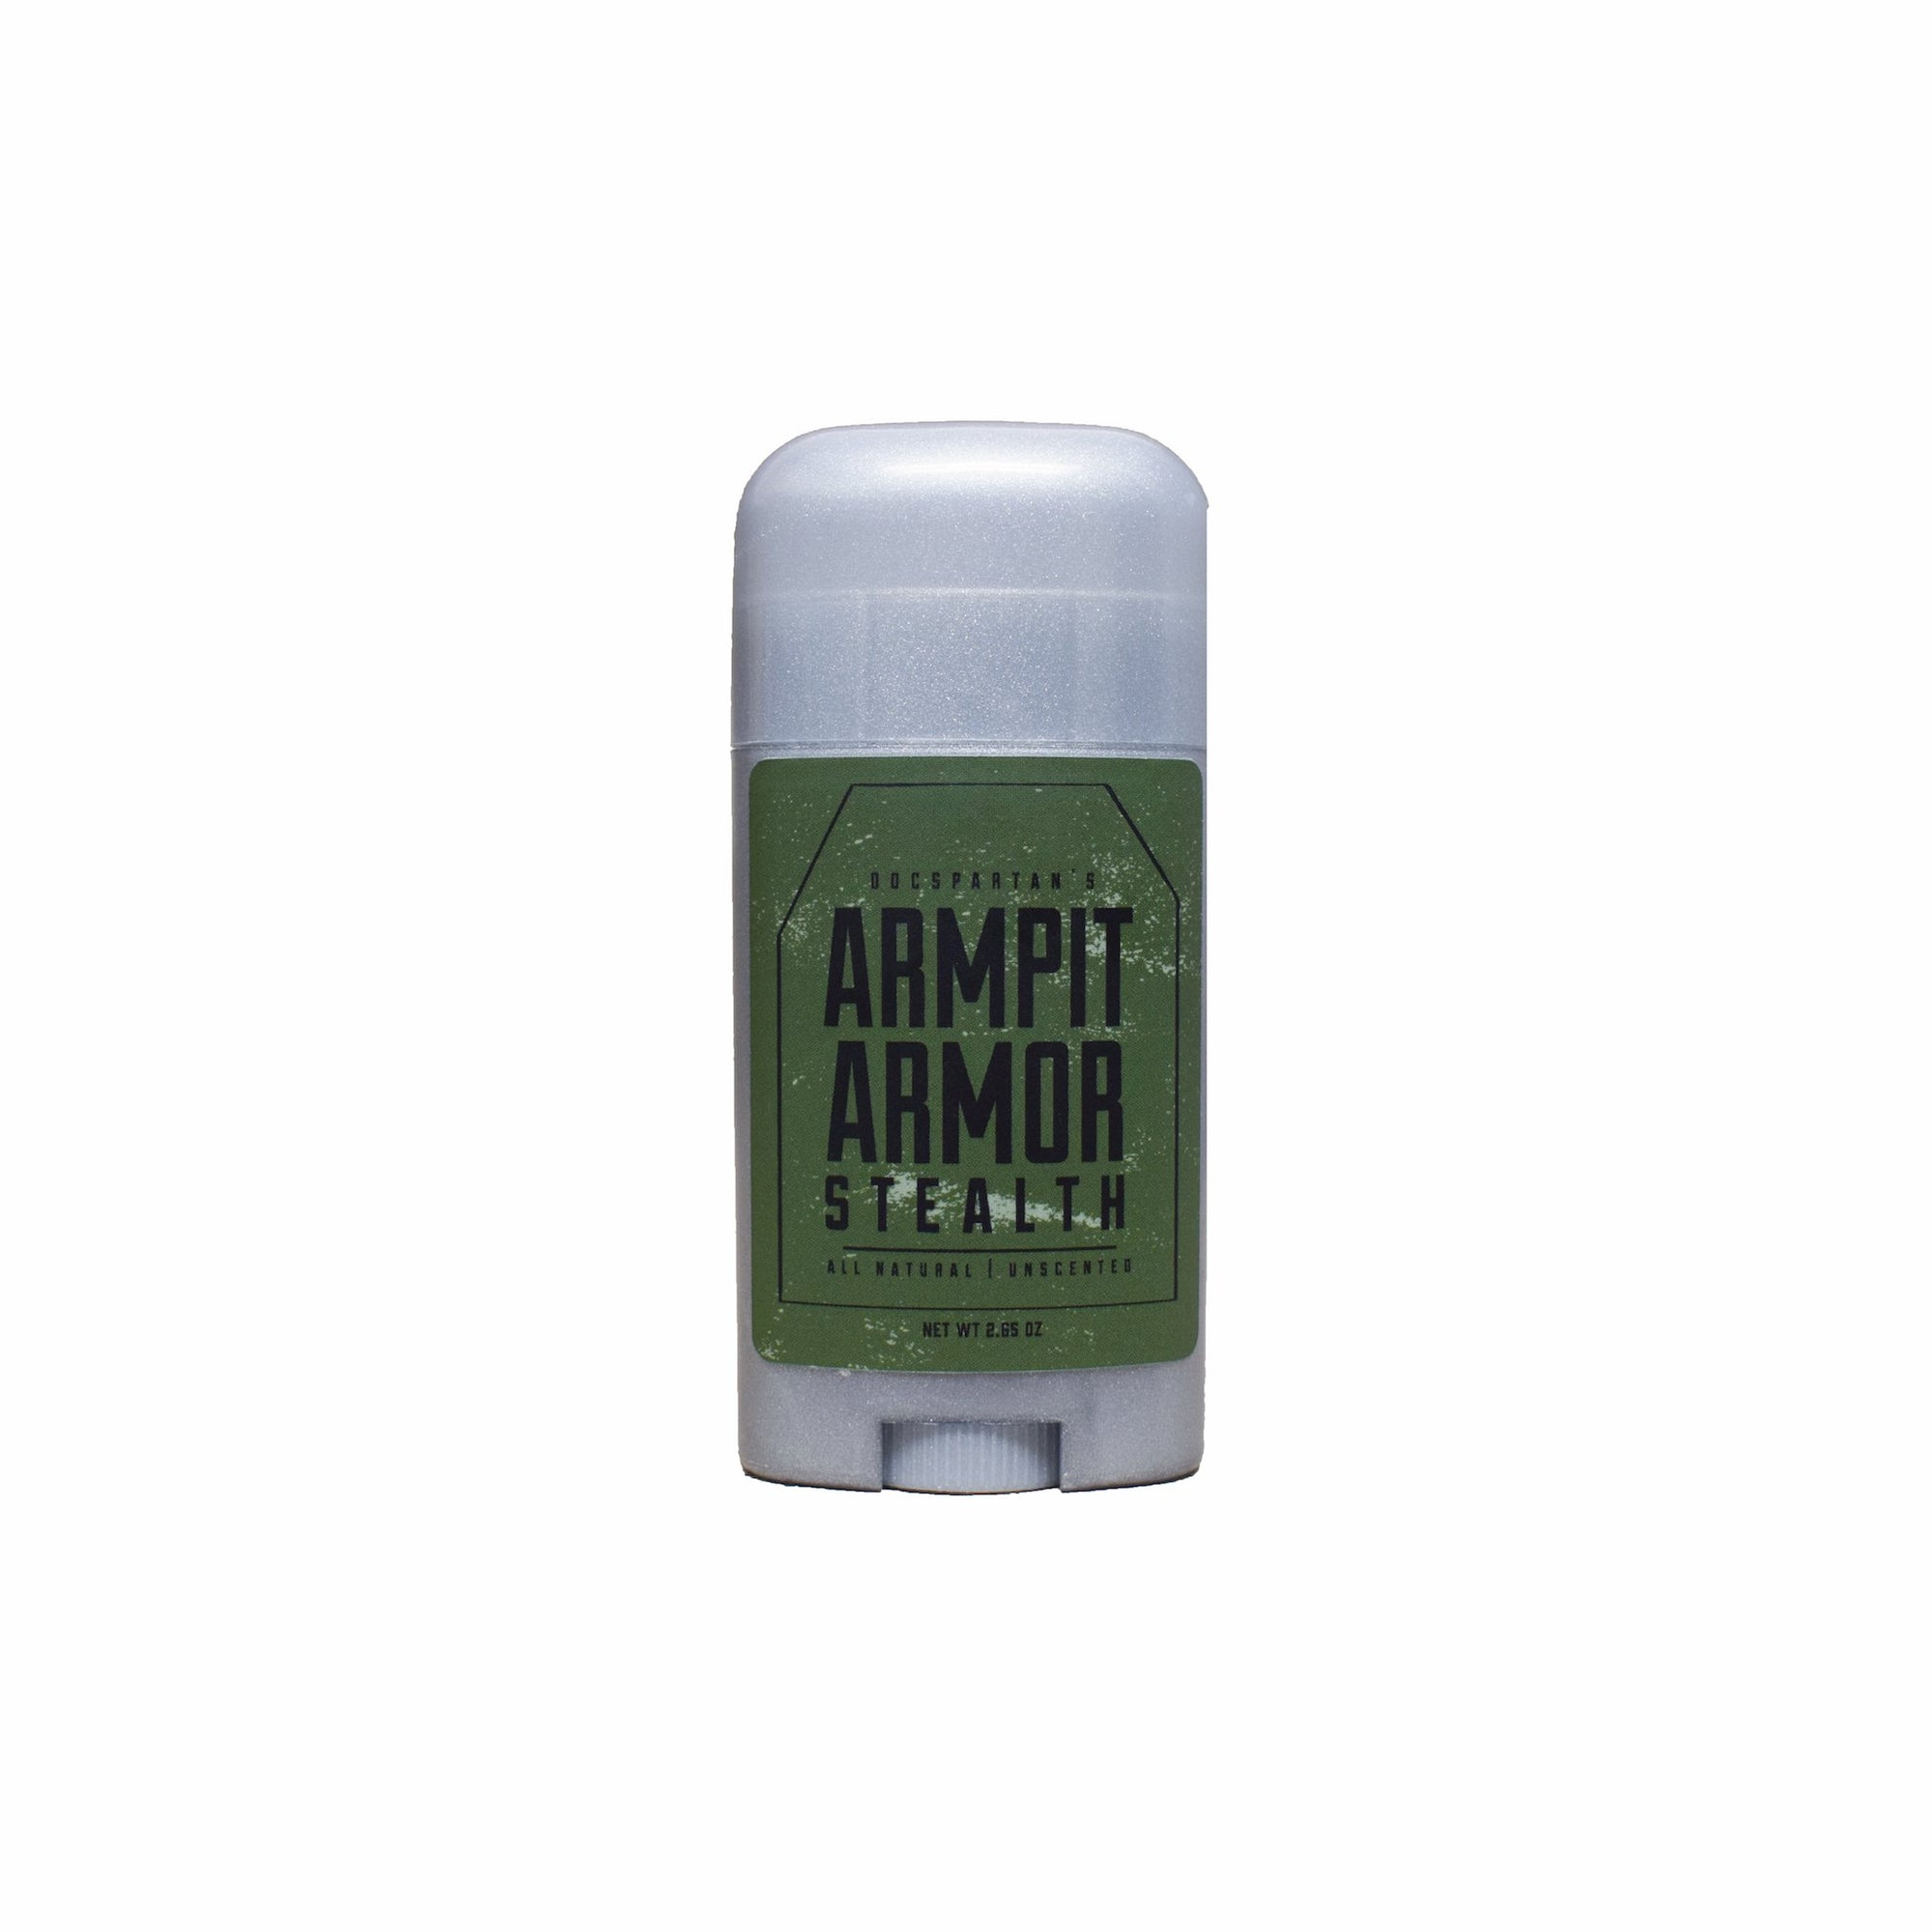 ArmPit Armor - All Natural Deodorant - Stealth Unscented